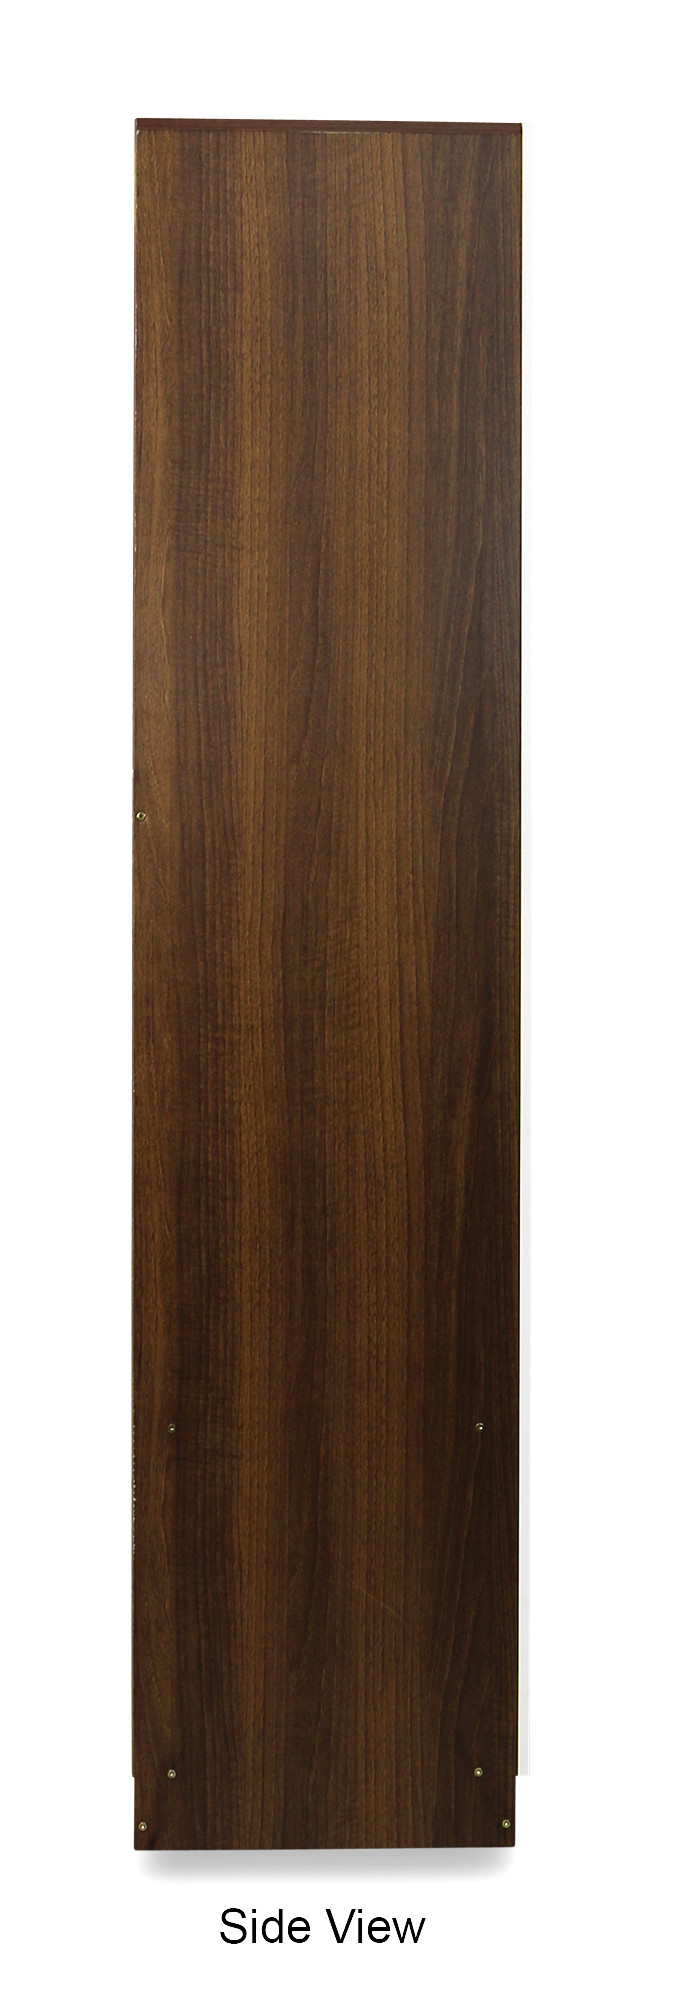 Malcom 3 Door Wardrobe In Snow White And Walnut